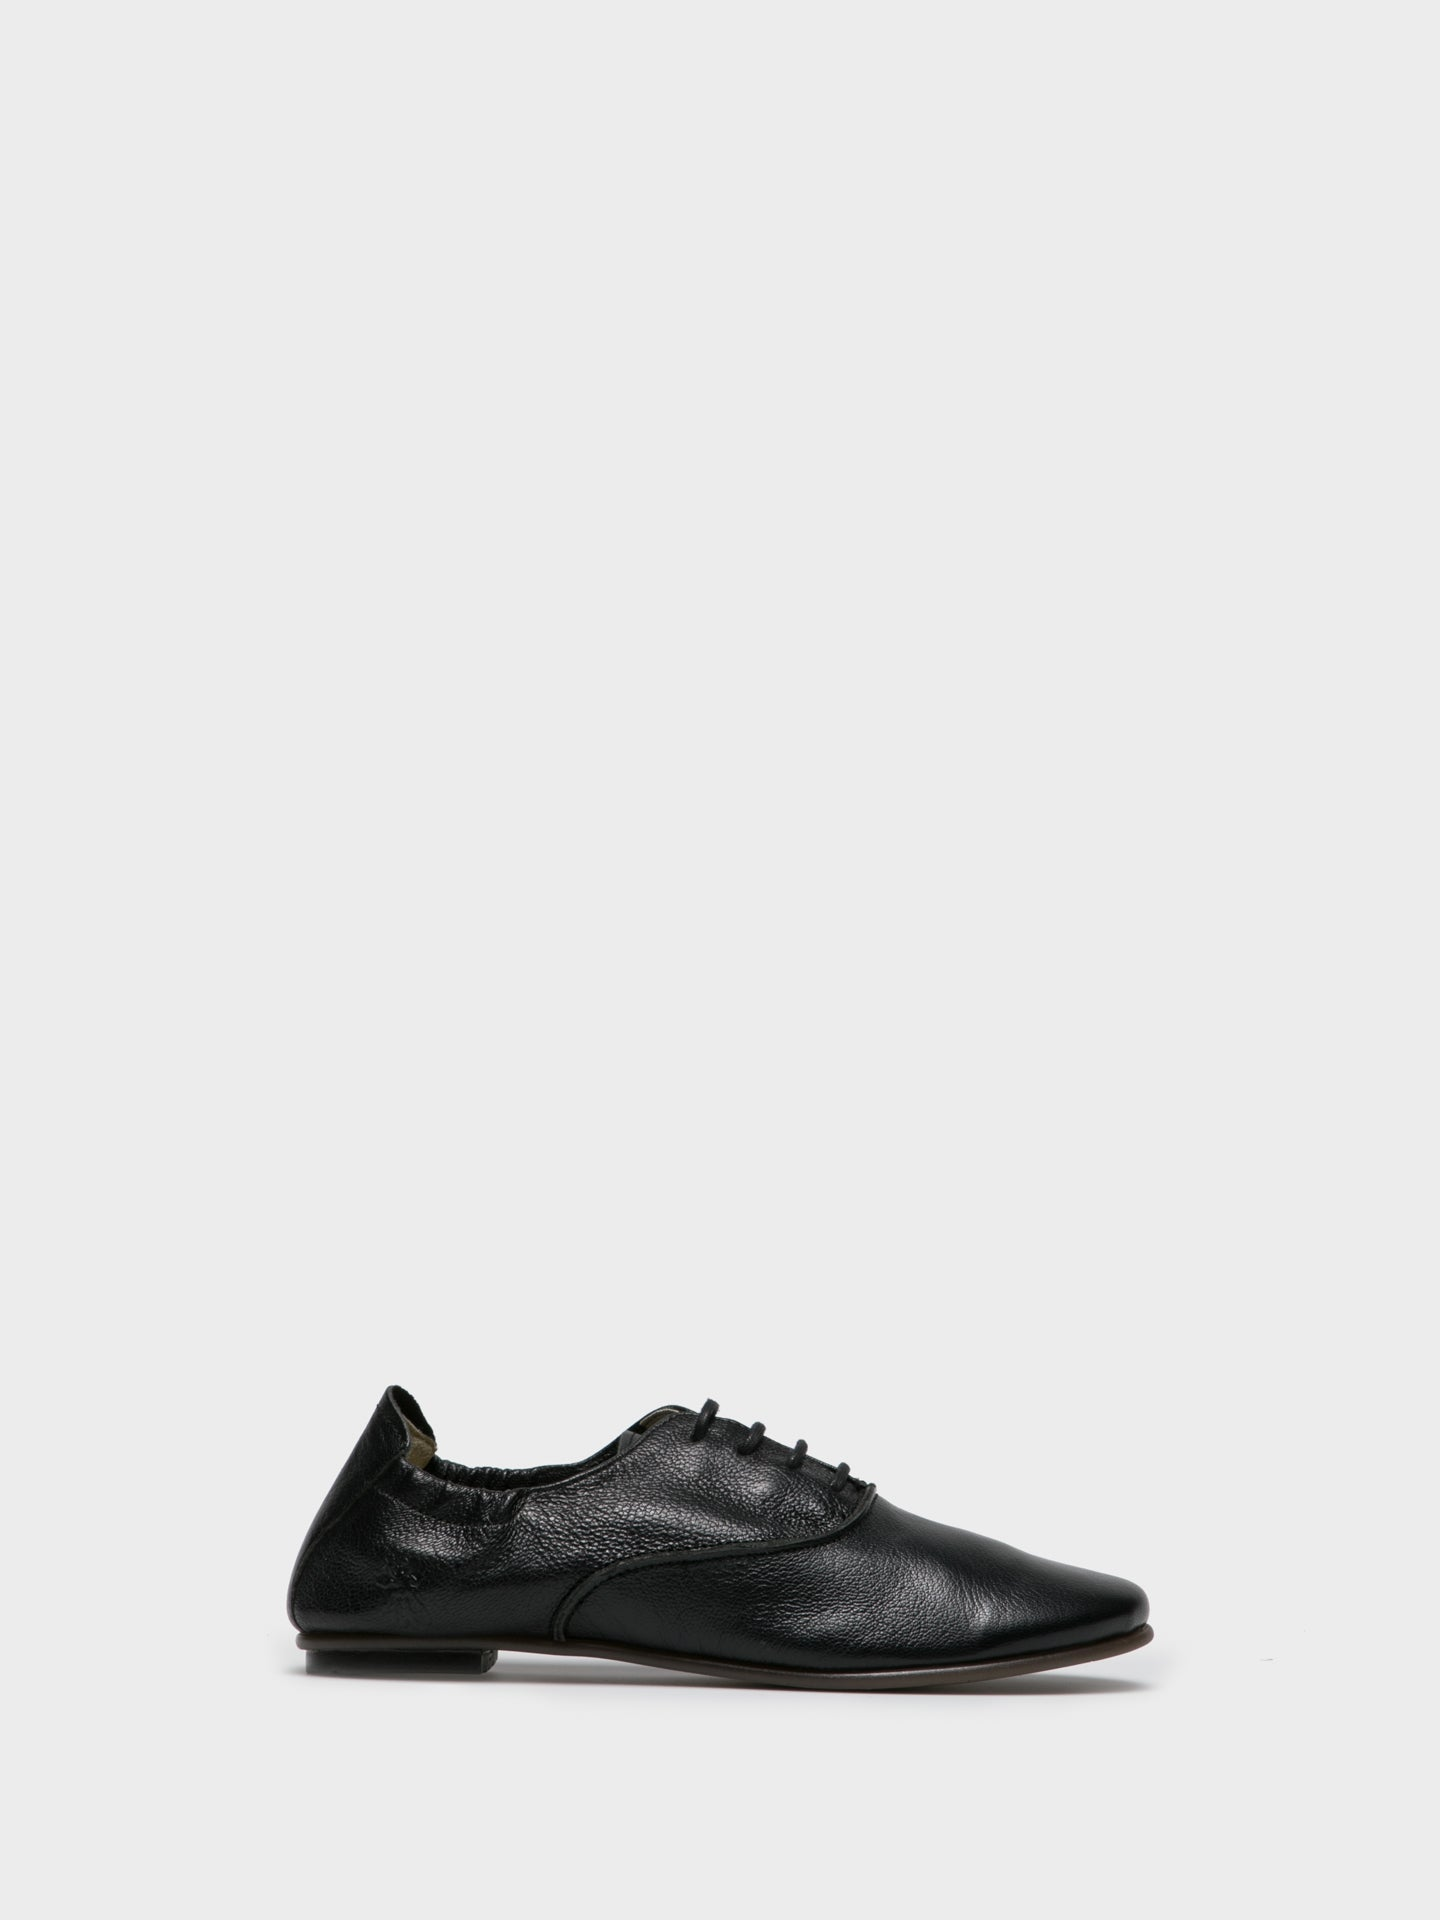 Fly London Sapatos Oxford em Preto